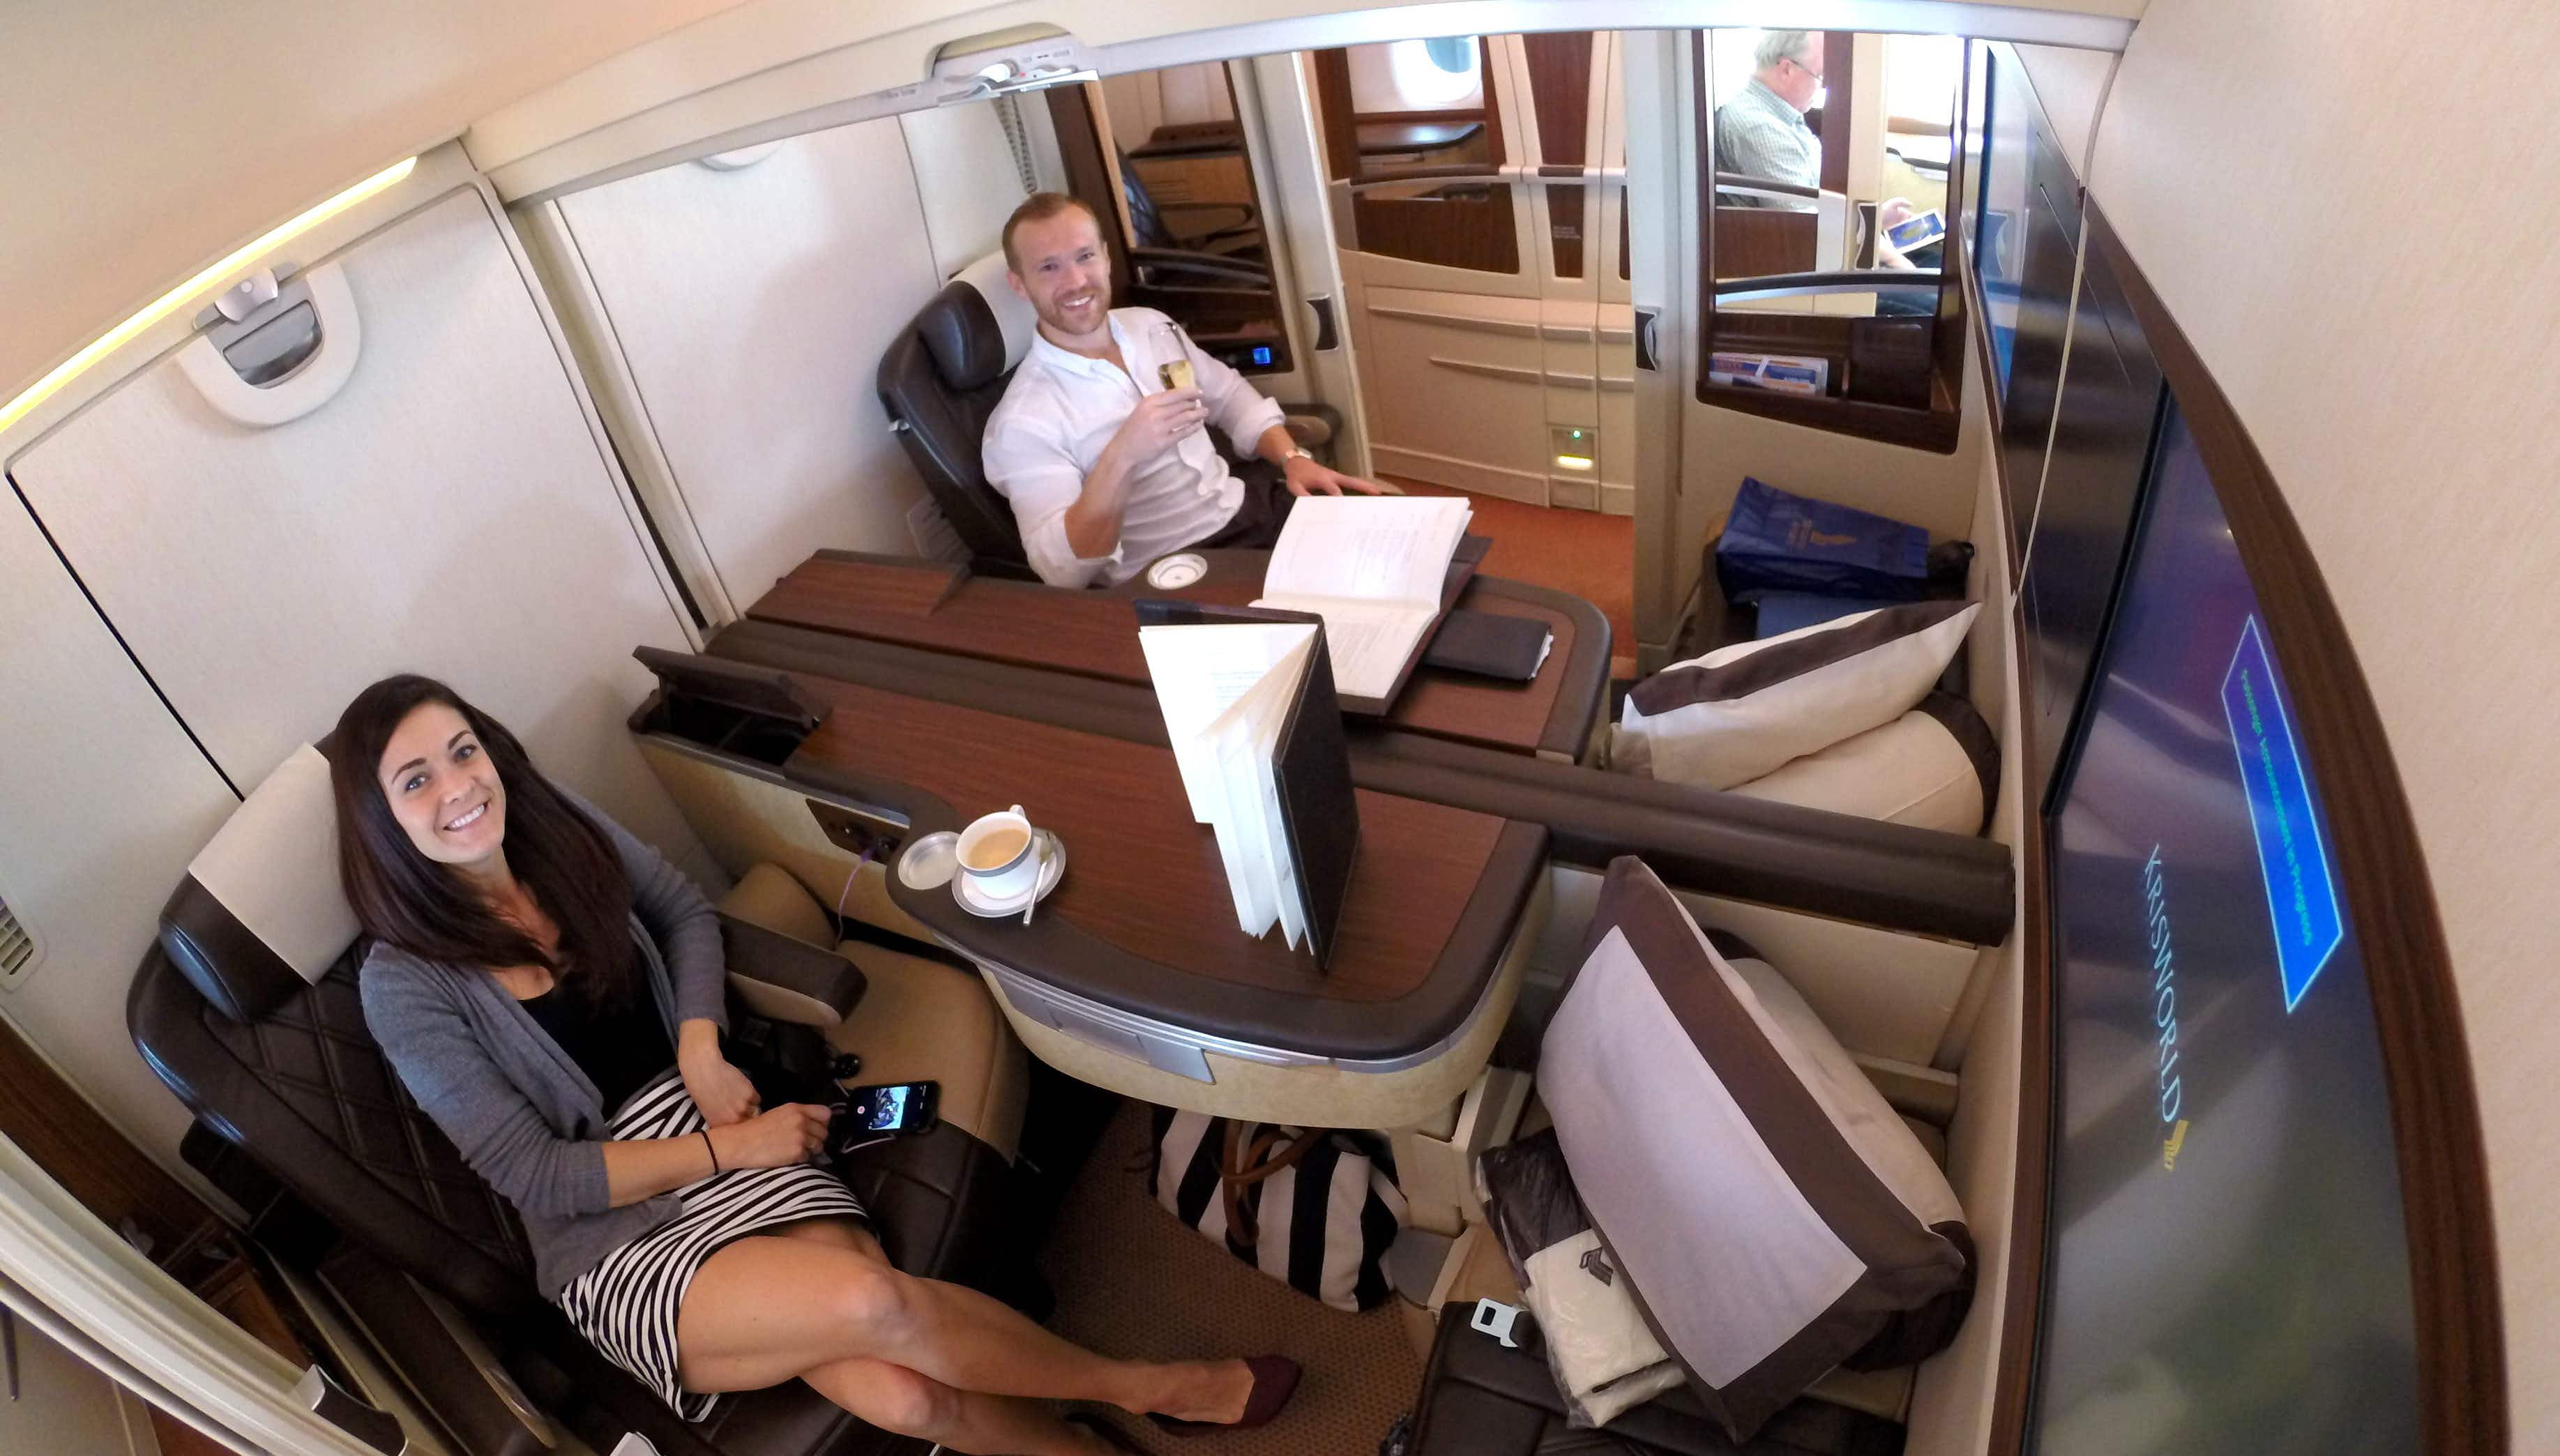 This couple travelled the world by paying less than $2200 for flights worth 25 times that